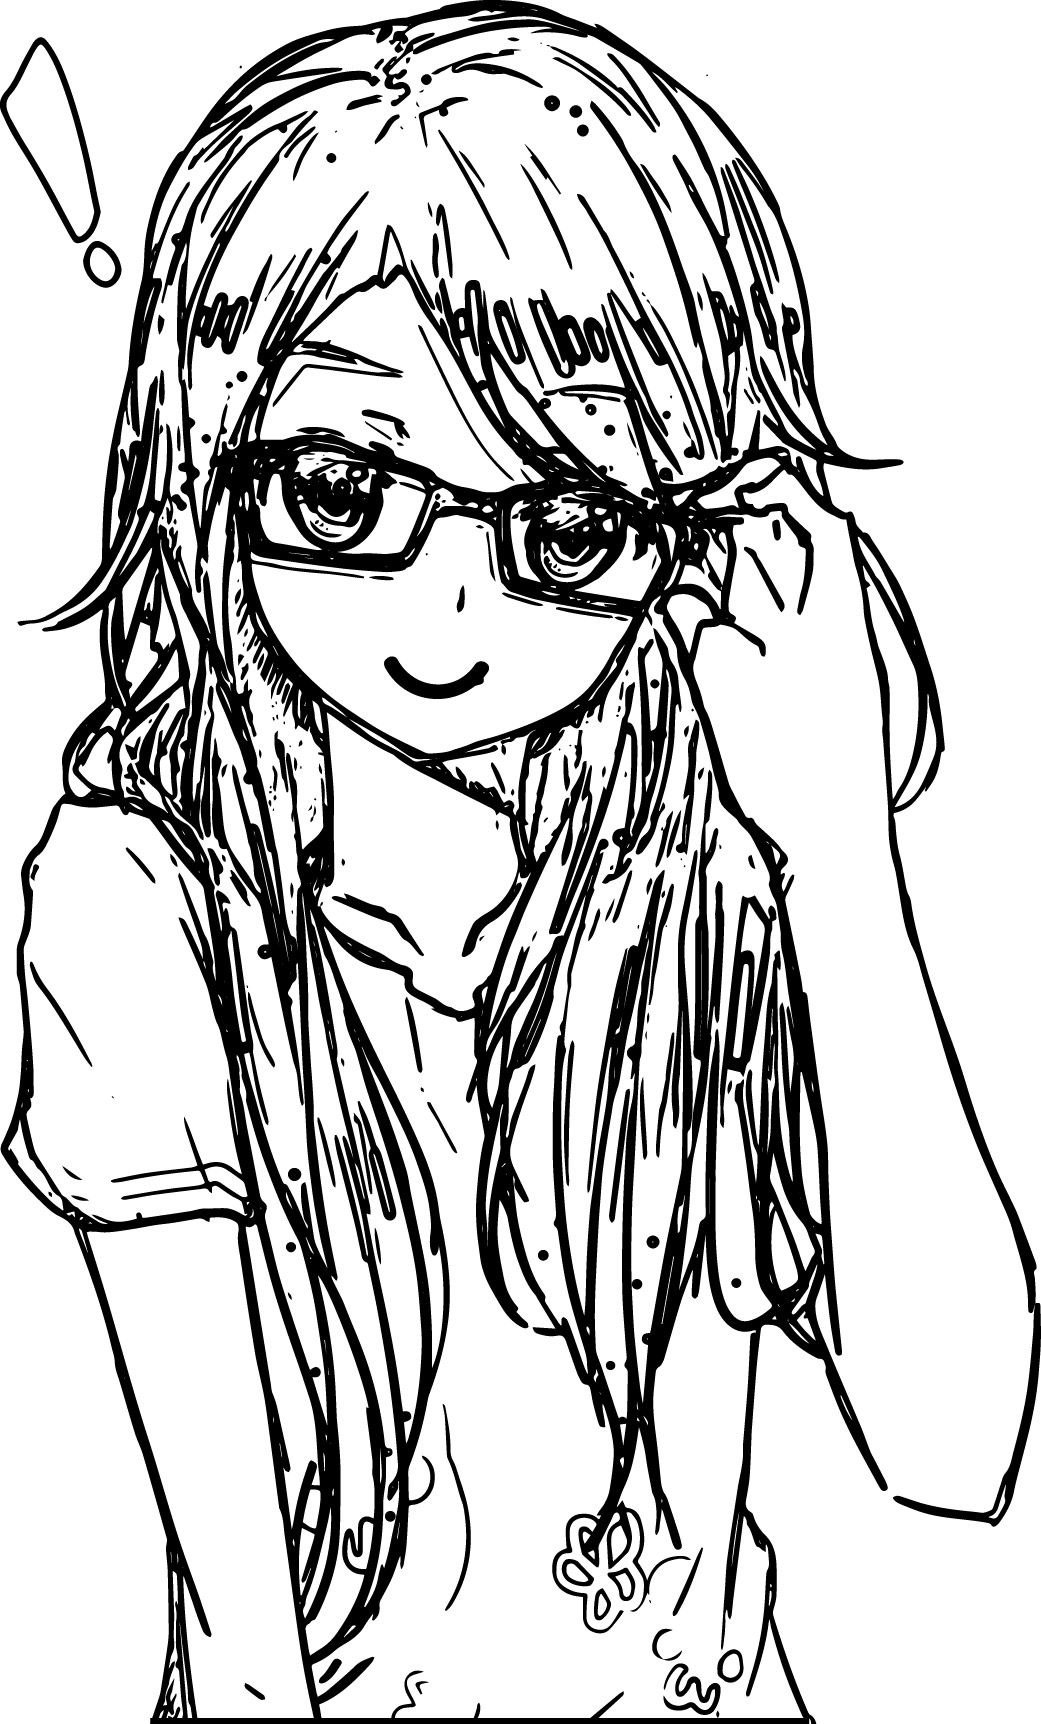 Awesome Anime Art Girl Glasses Coloring Page Anime Art Girl